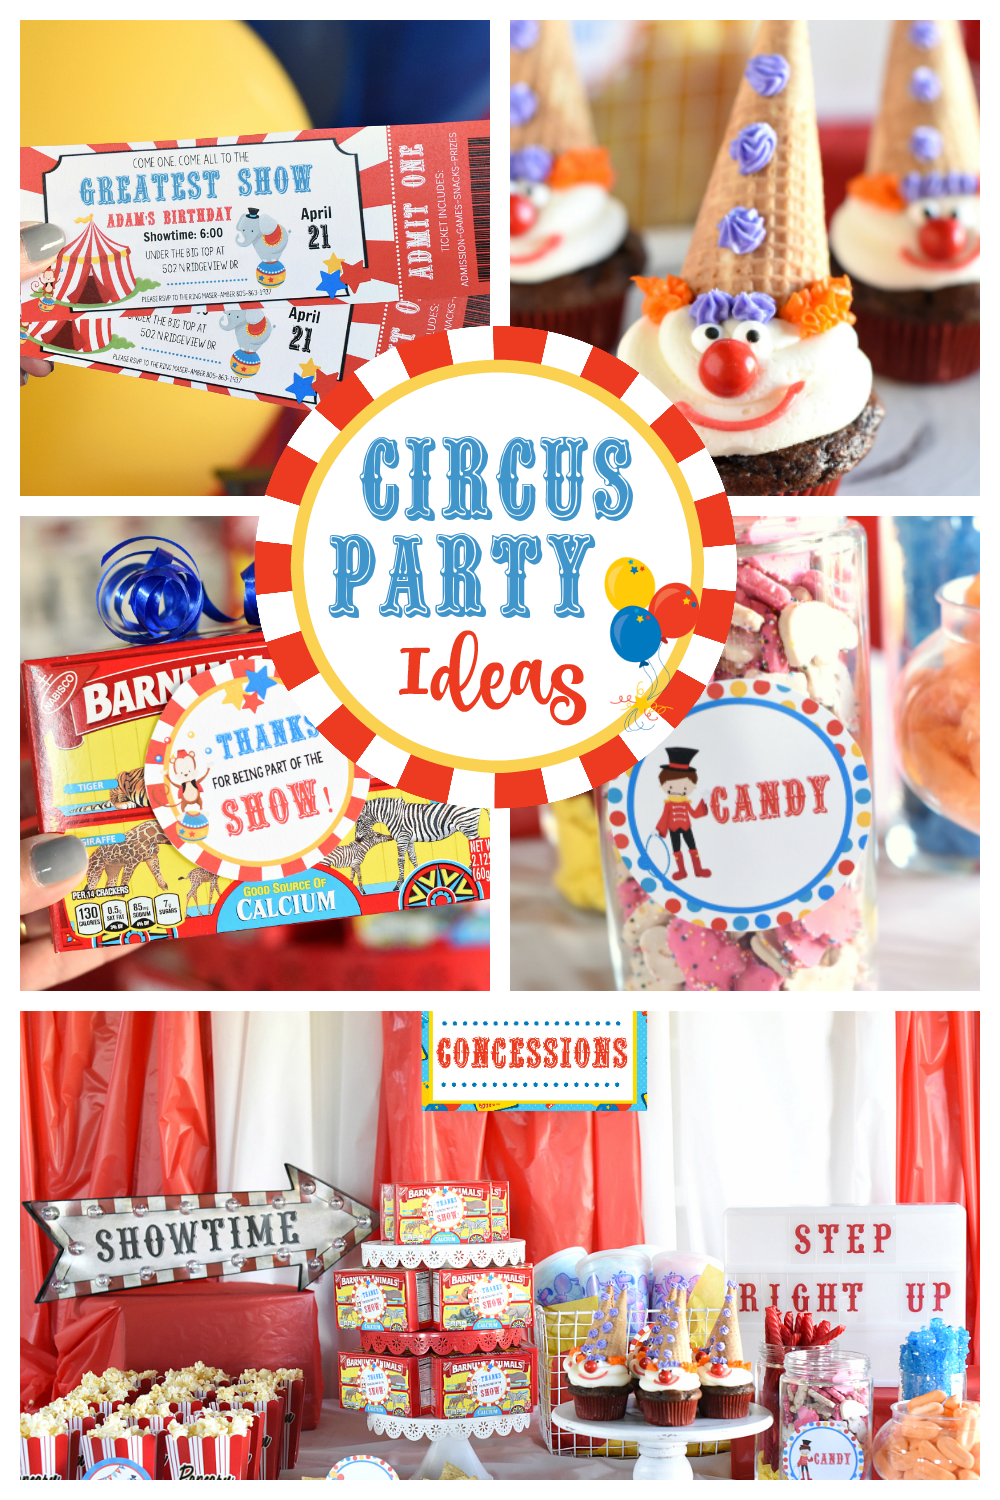 Circus Party Ideas-This fun circus party is filled with ideas for circus party invitations, decorations, food, and activities. #party #birthdayparty #birthday #thegreatestshow